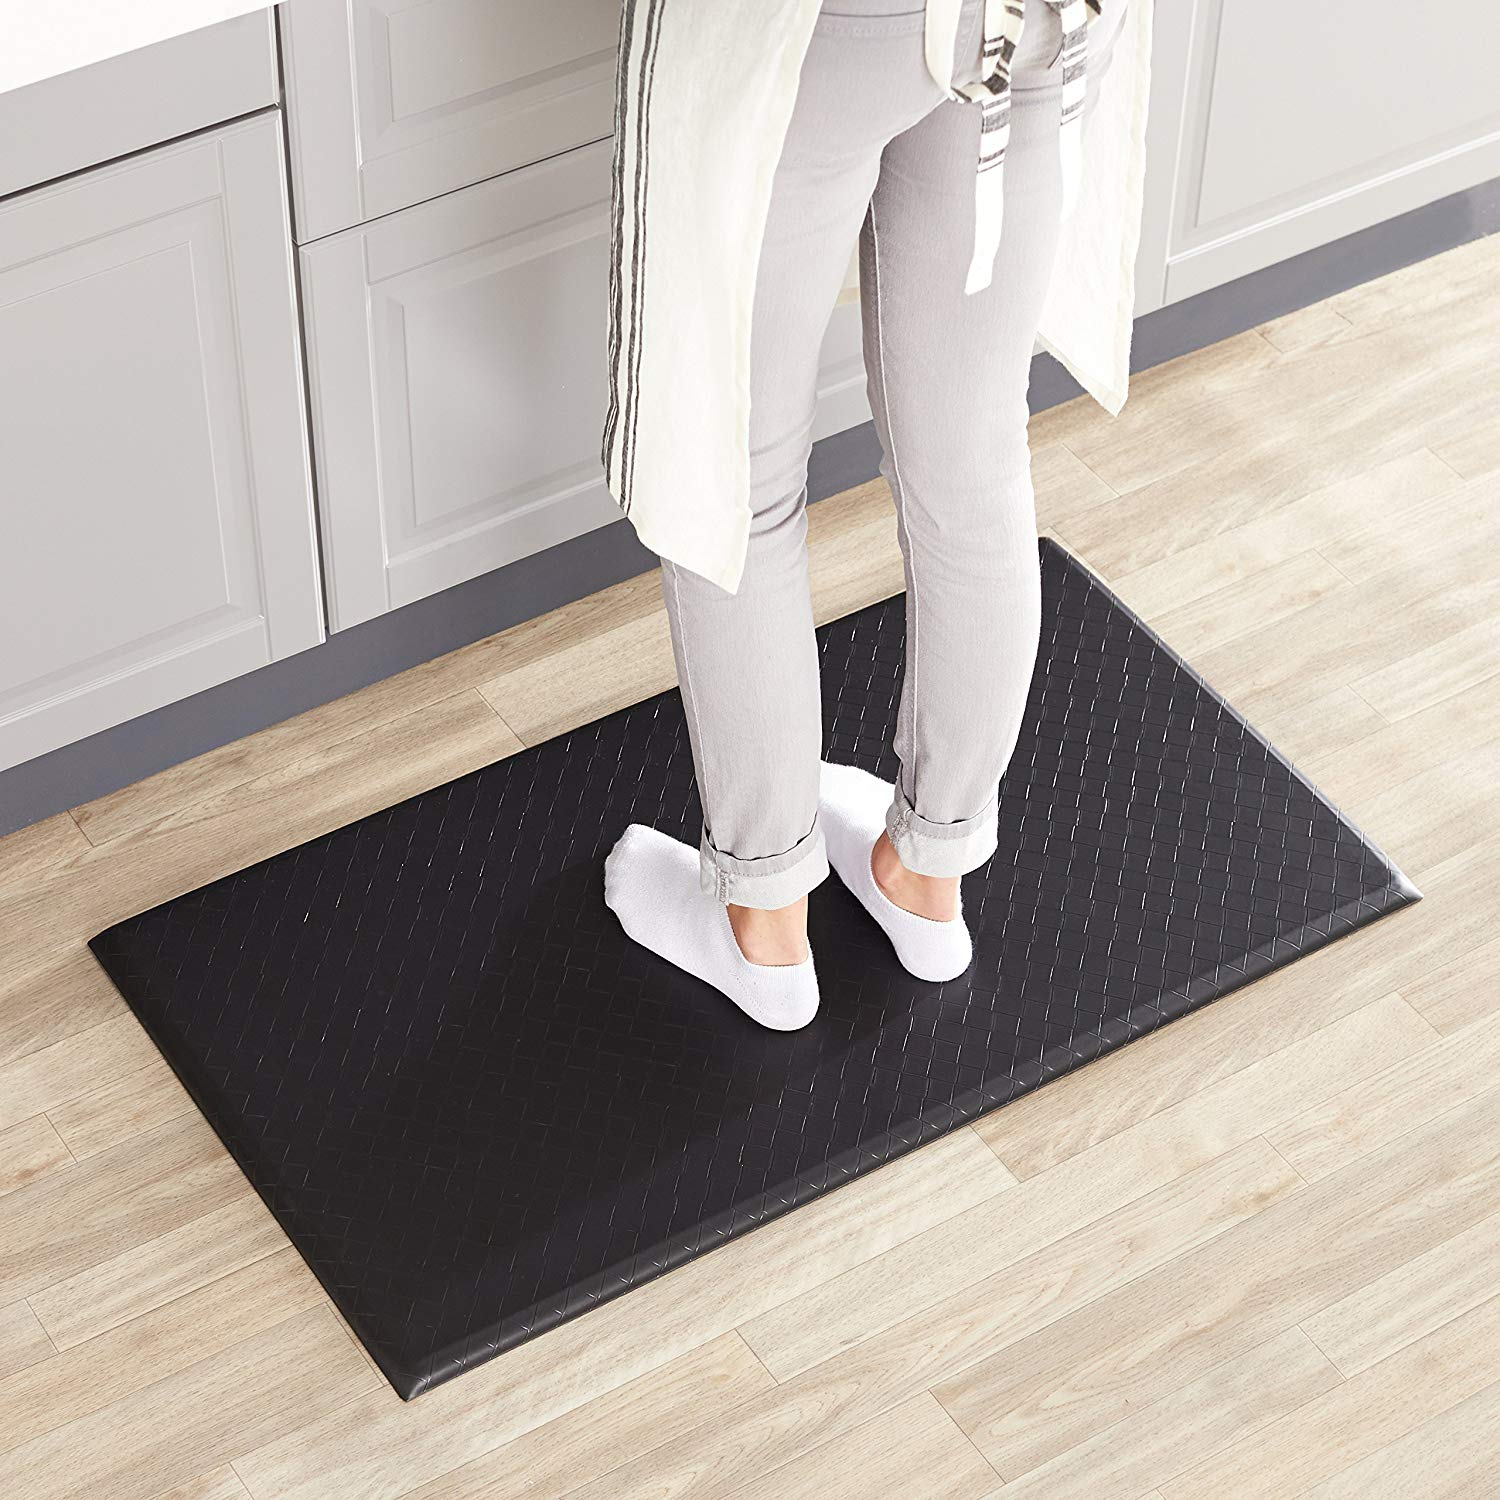 Comfort Anti-Fatigue Mat from Amazon Basics Premium for home and office